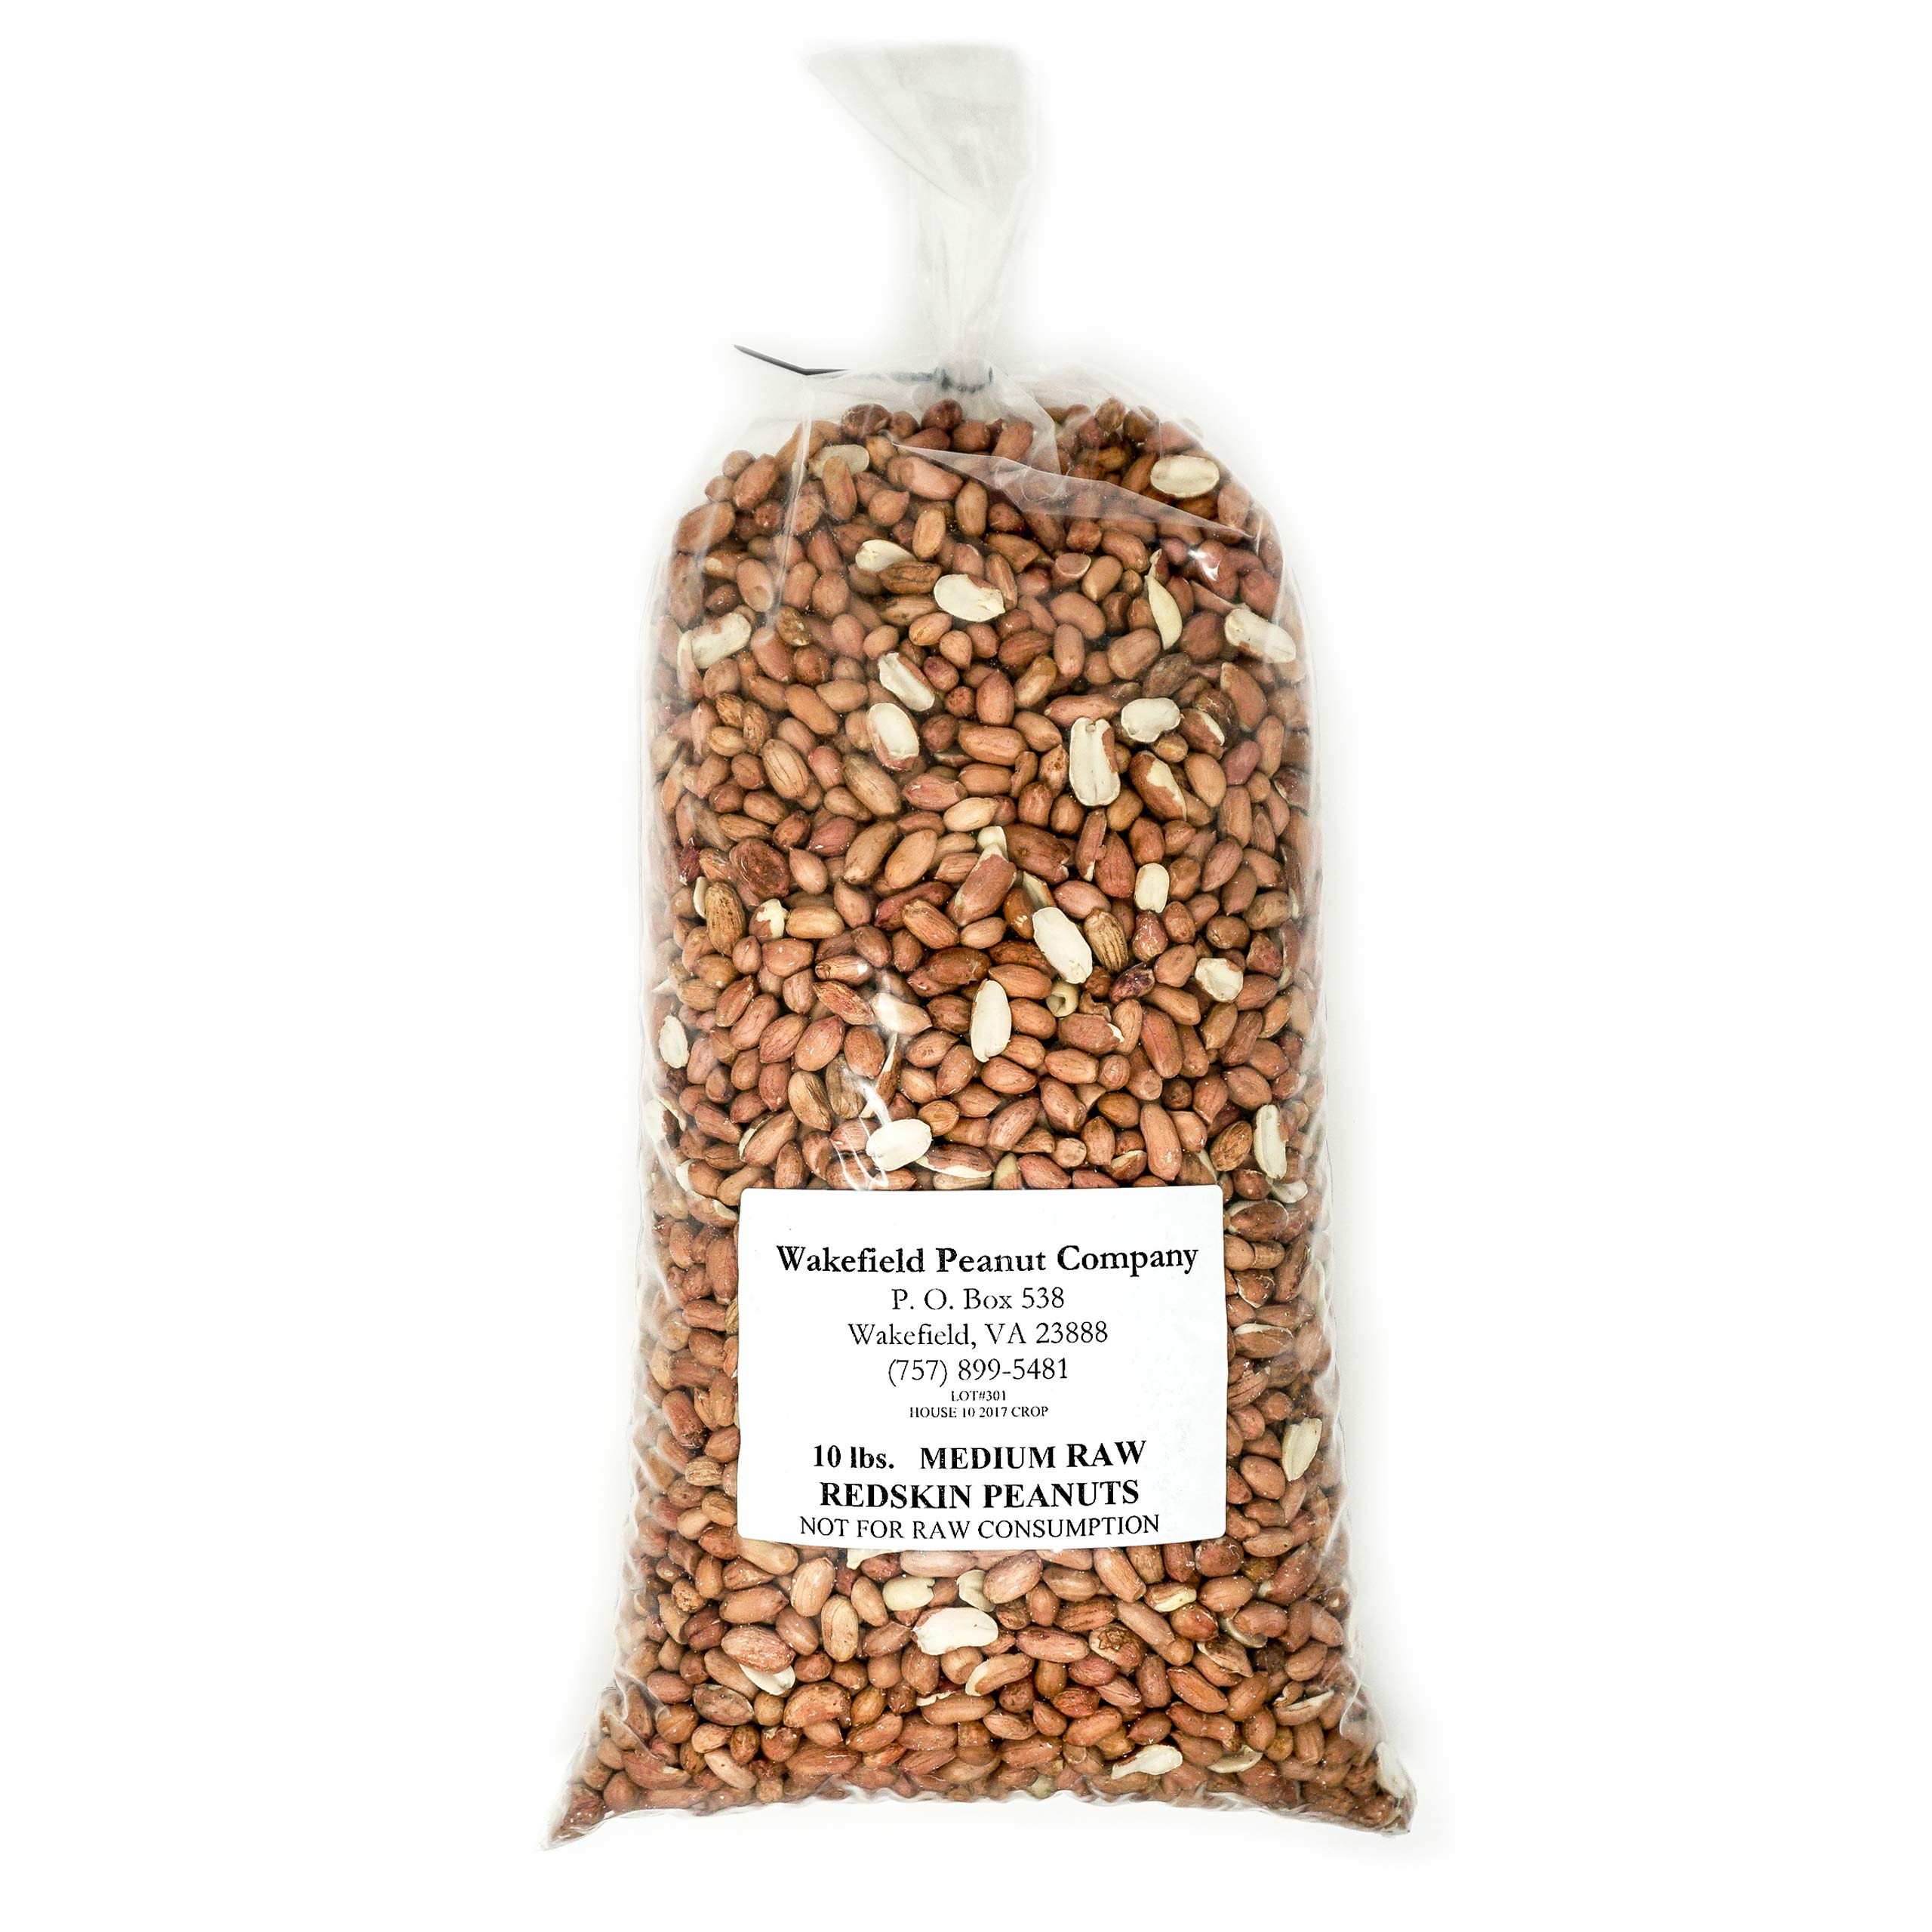 Virginia Peanuts Raw Redskin Peanuts, Premium Grade / 10 lbs Bulk/Shelled / For Cooking Peanut Brittle, Peanut Candy, Peanut Butter Cookies, Peanut Butter, Roasted Peanut, Trail Mix, Granola & more by WAKEFIELD PEANUT COMPANY A TRADITION OF EXCELLENCE SINCE 1965